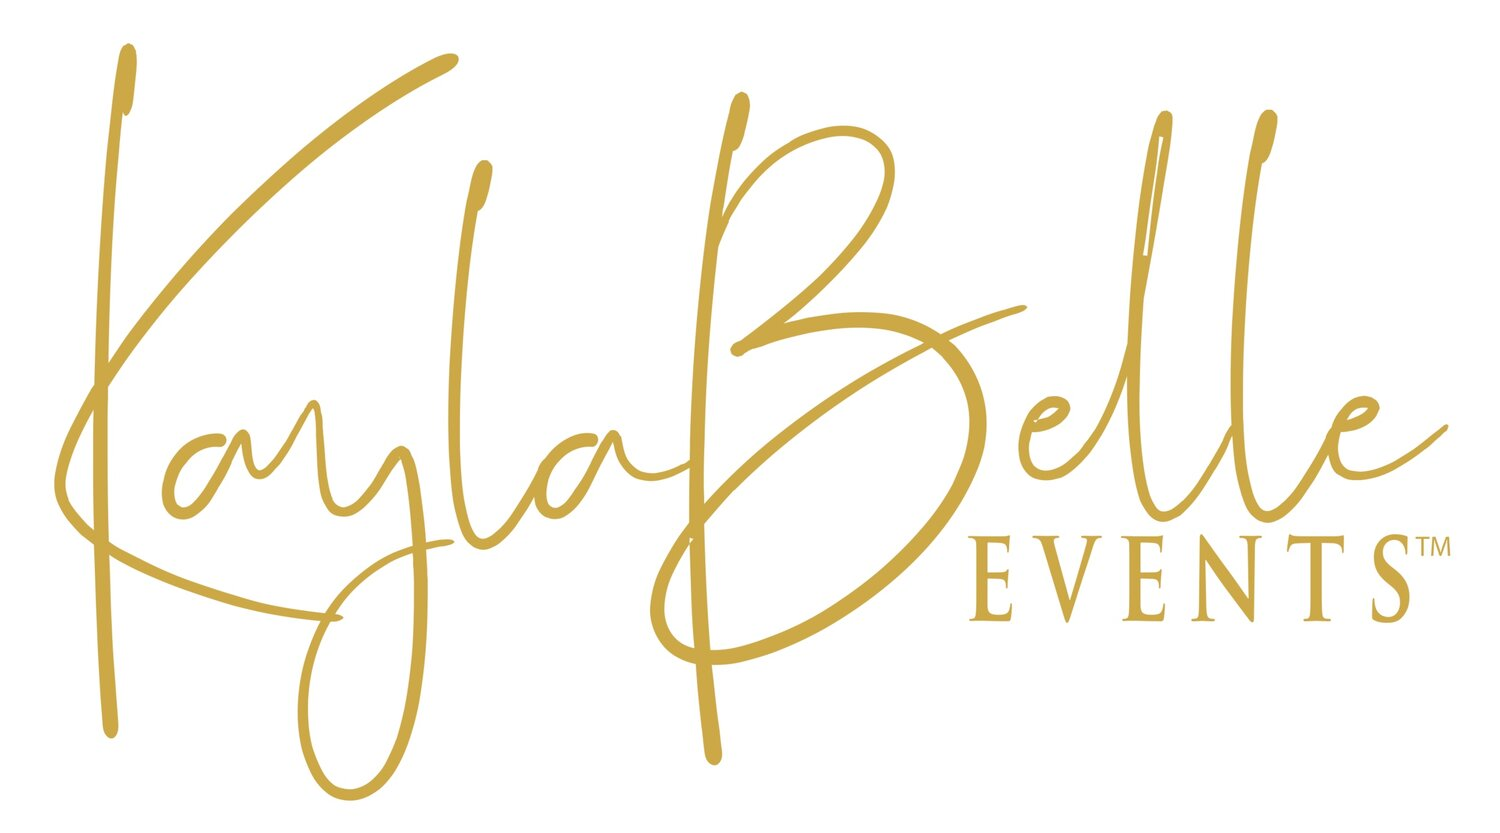 Kayla Belle Events